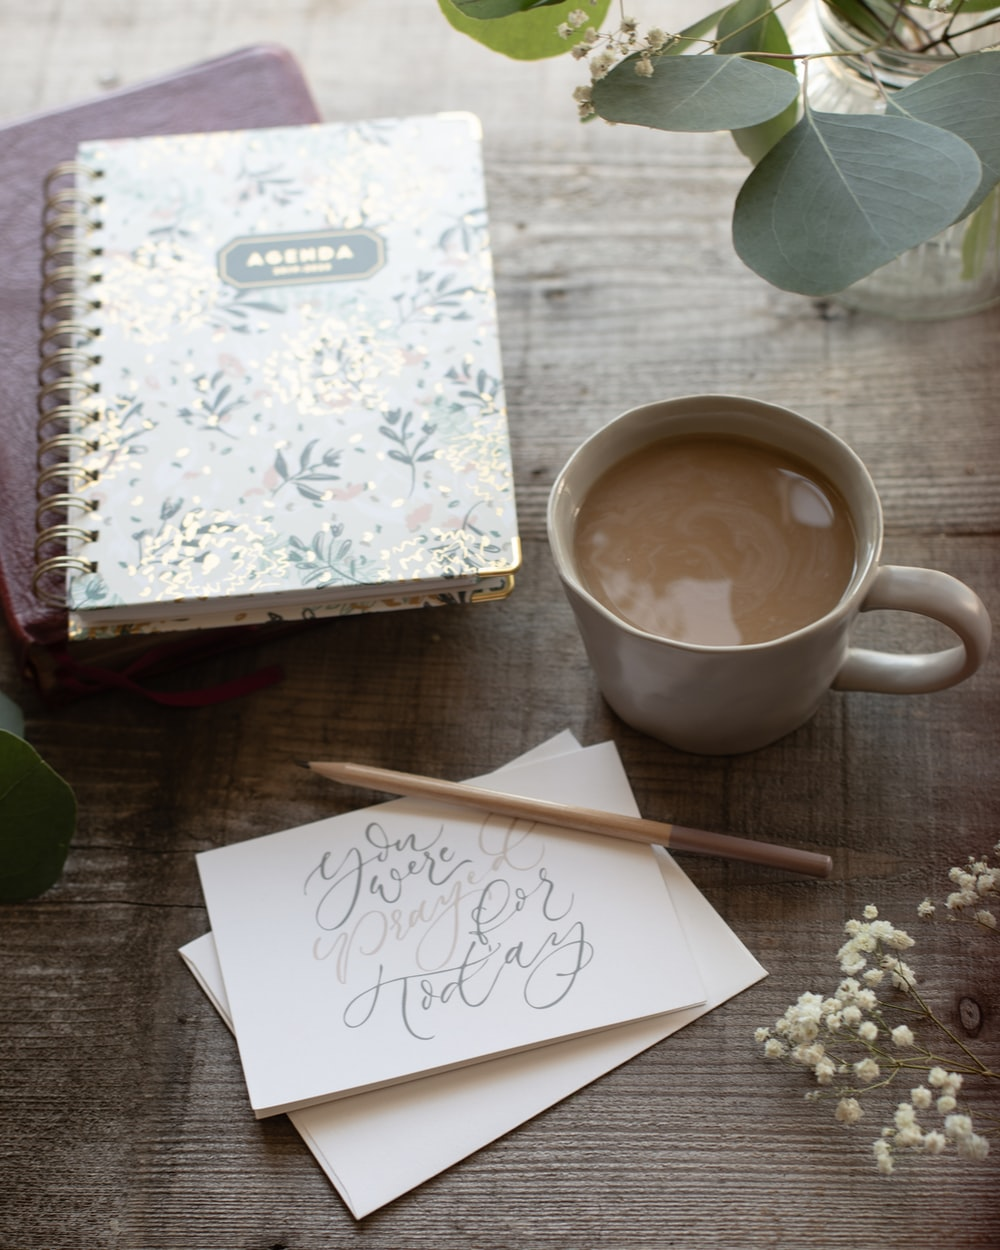 white and purple floral notebook beside white ceramic mug